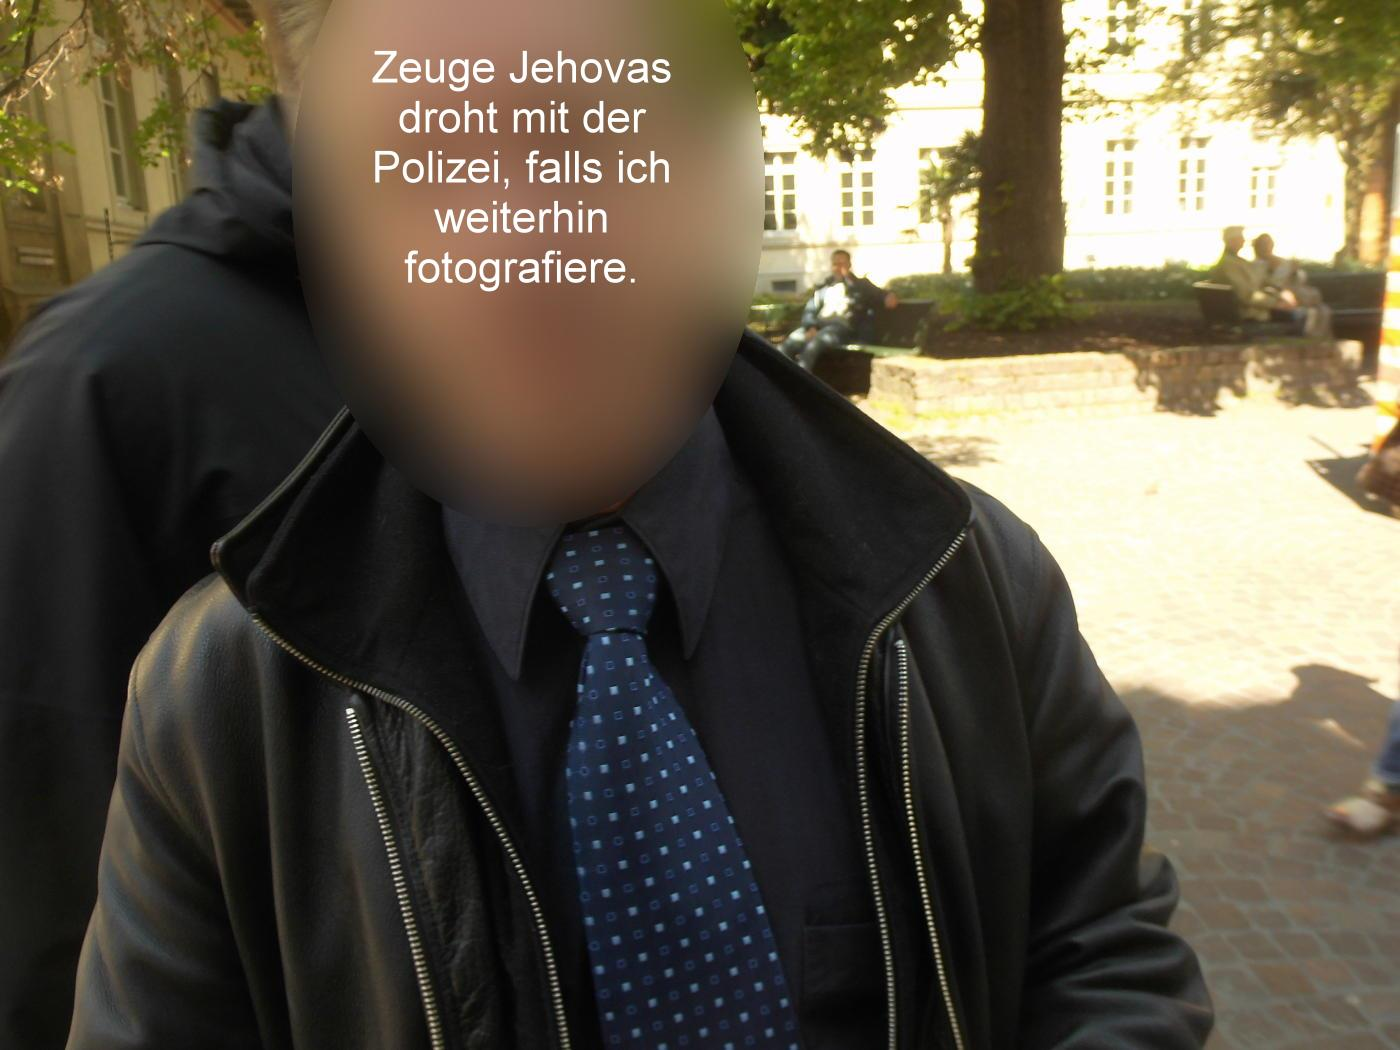 Can Jehovah's Witnesses be photographed?